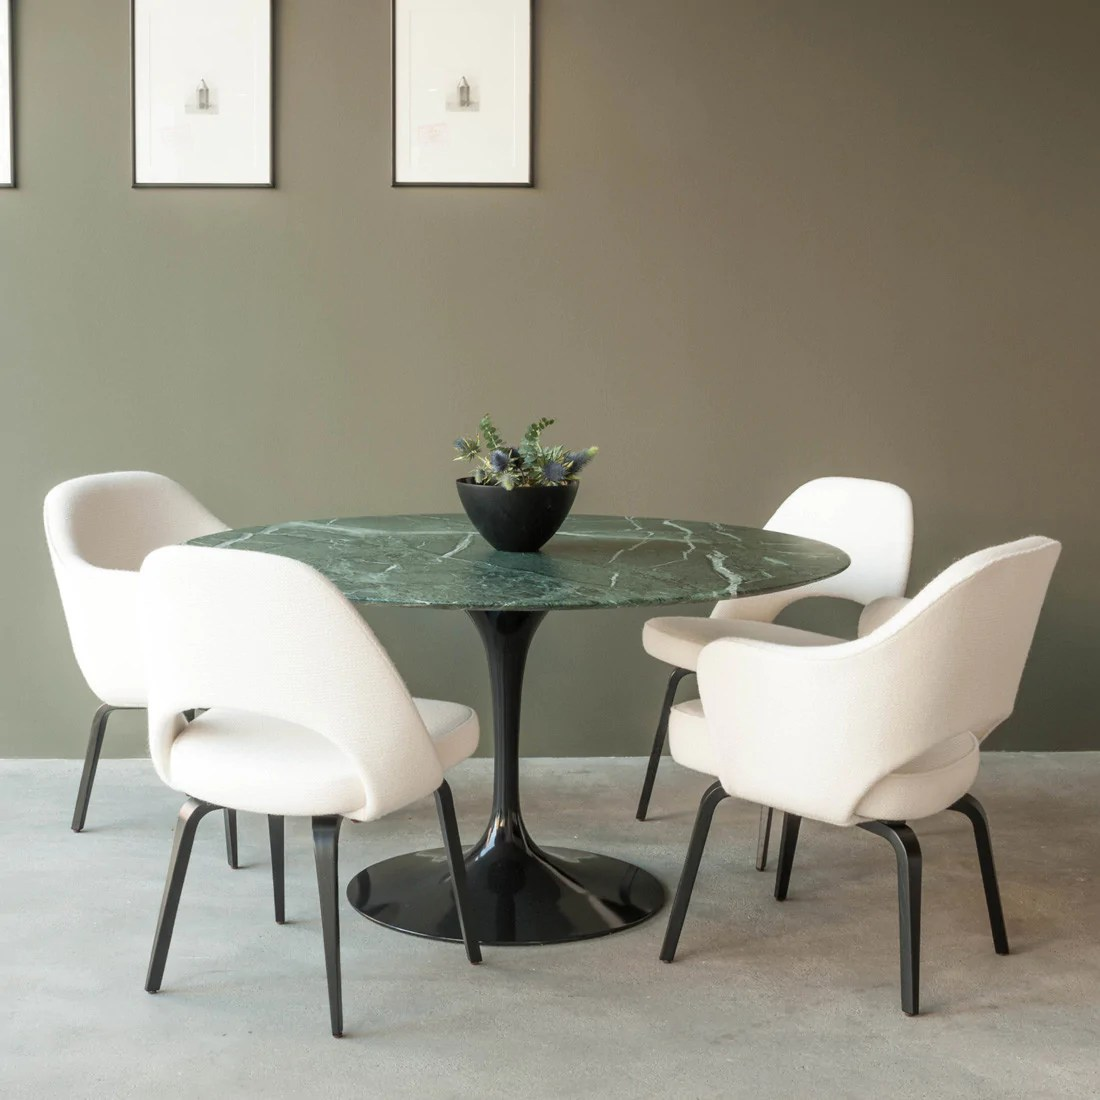 Saarinen Knoll Table Tulip Dining Table By Knoll Haus